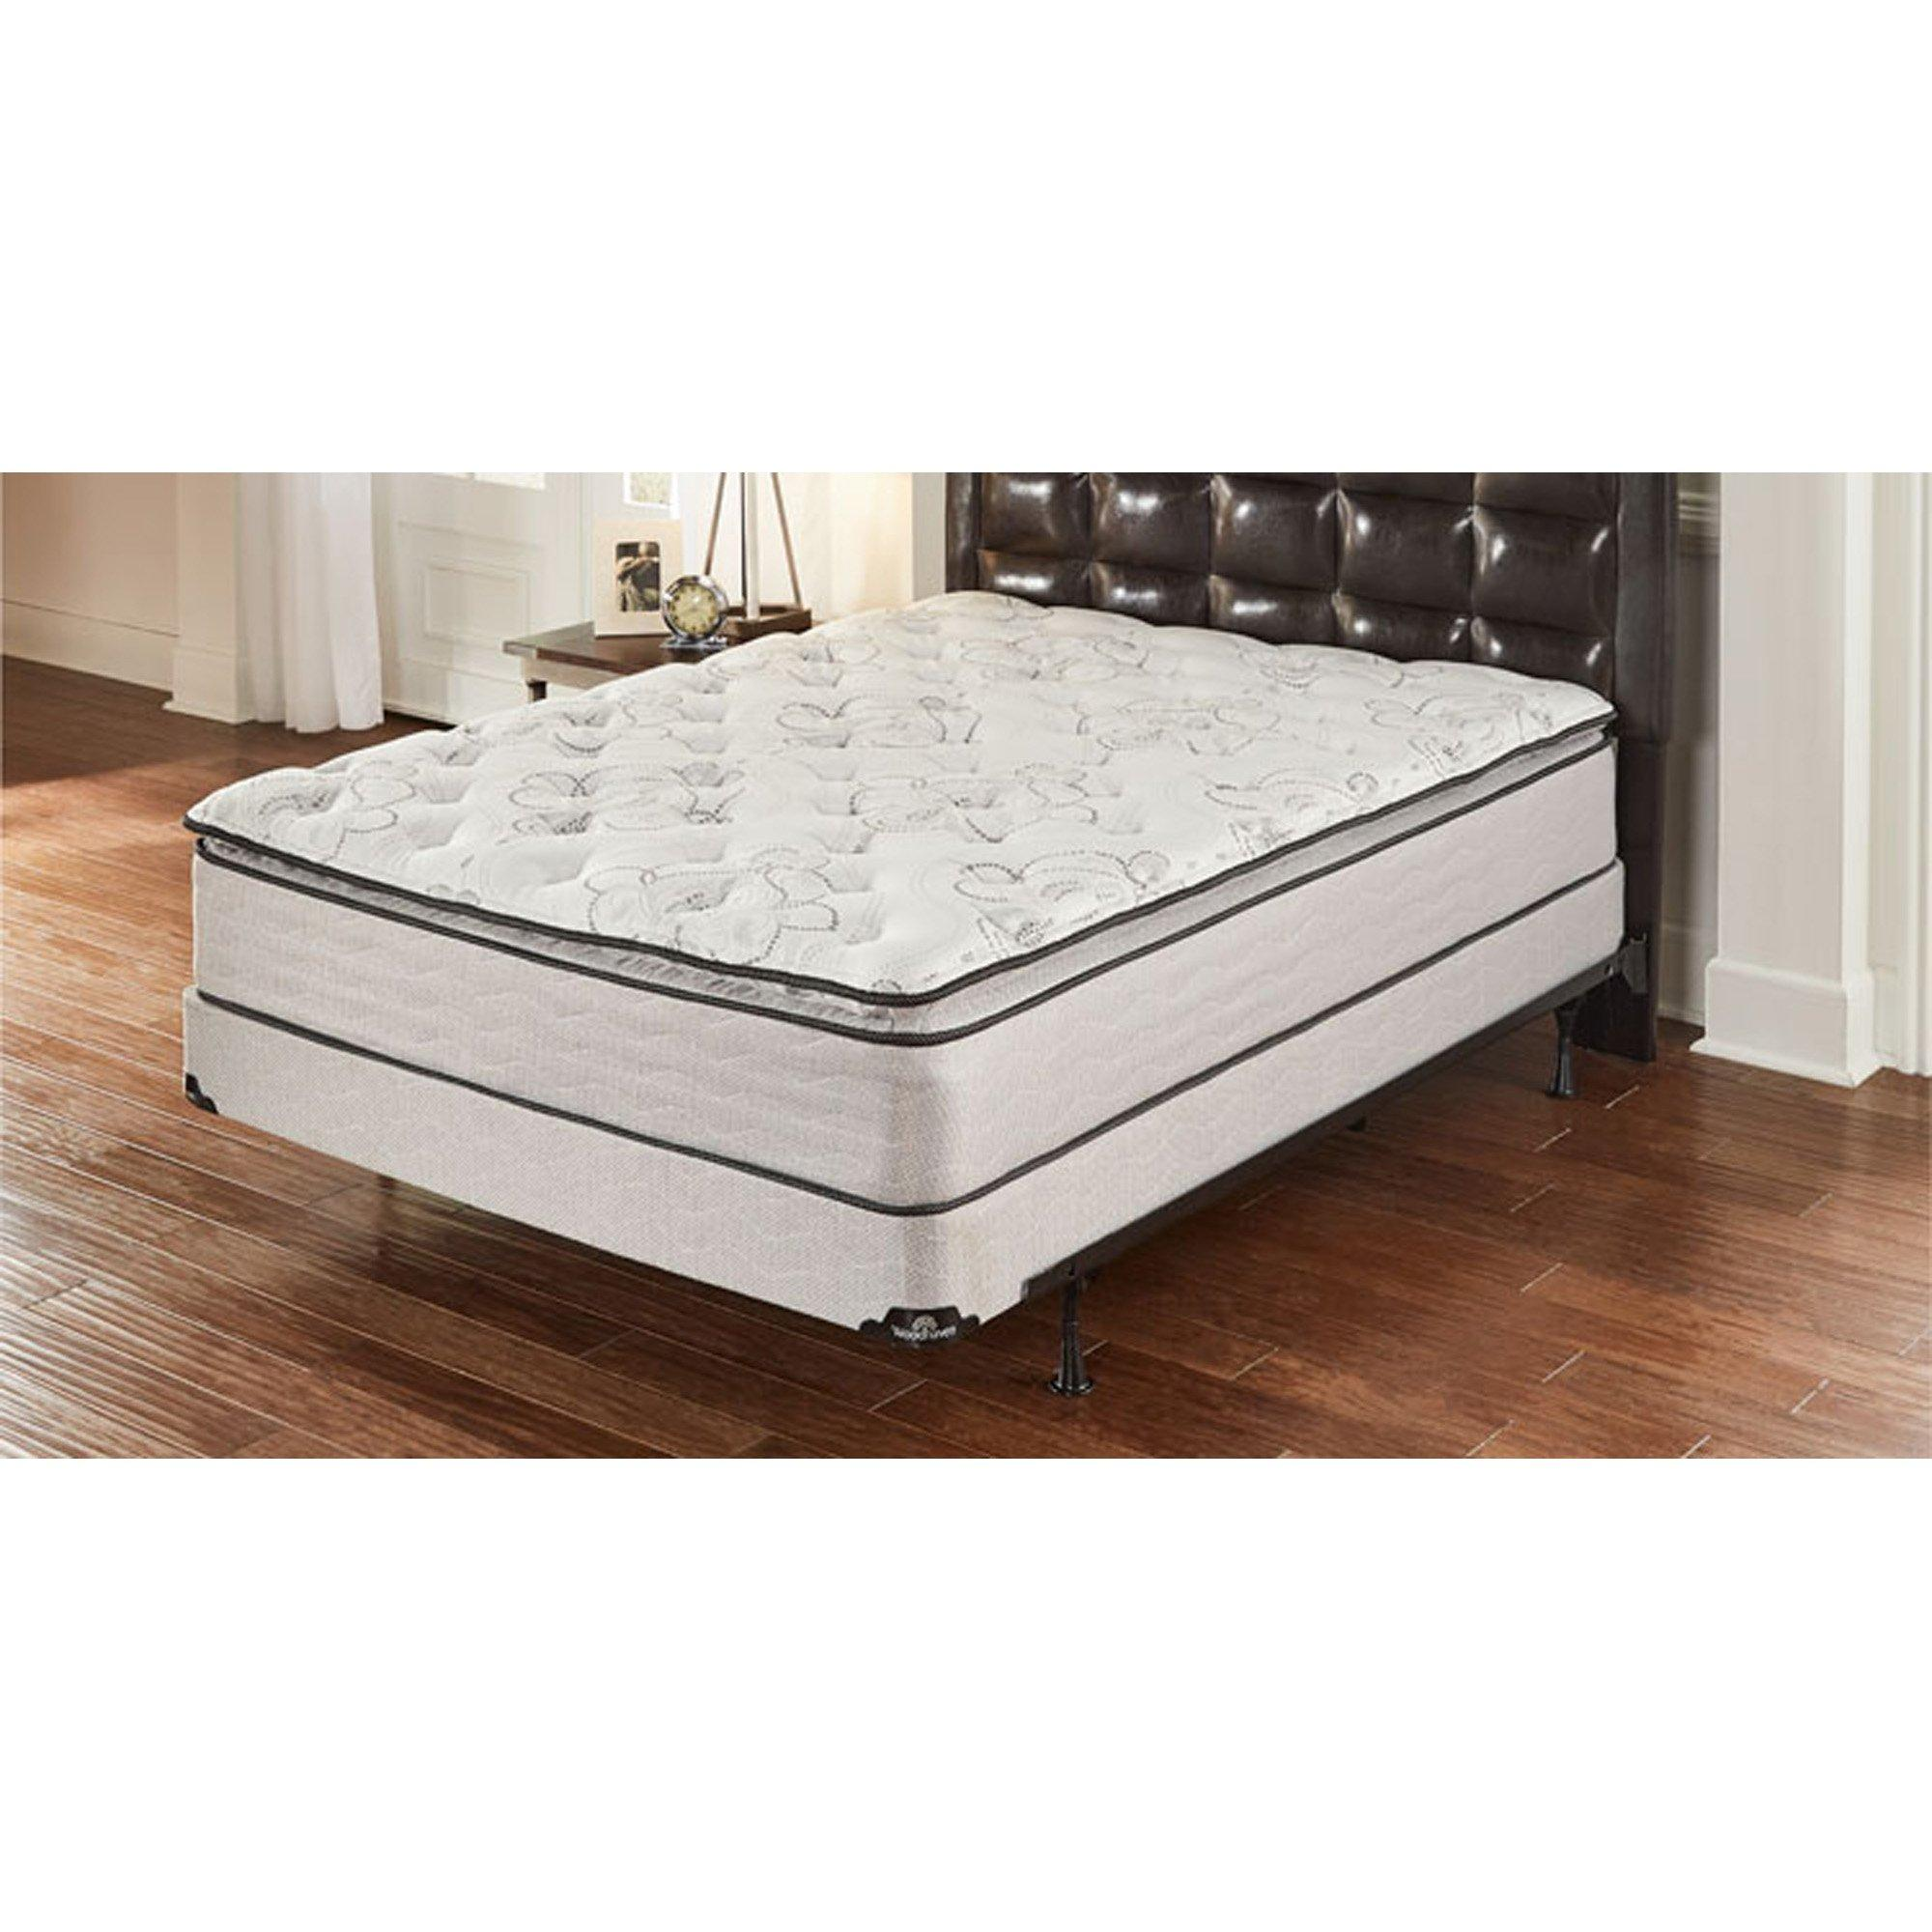 Rent To Own Woodhaven Pillowtop Plush King Mattress With 9 Foundation And Protectors At Aaron S Today